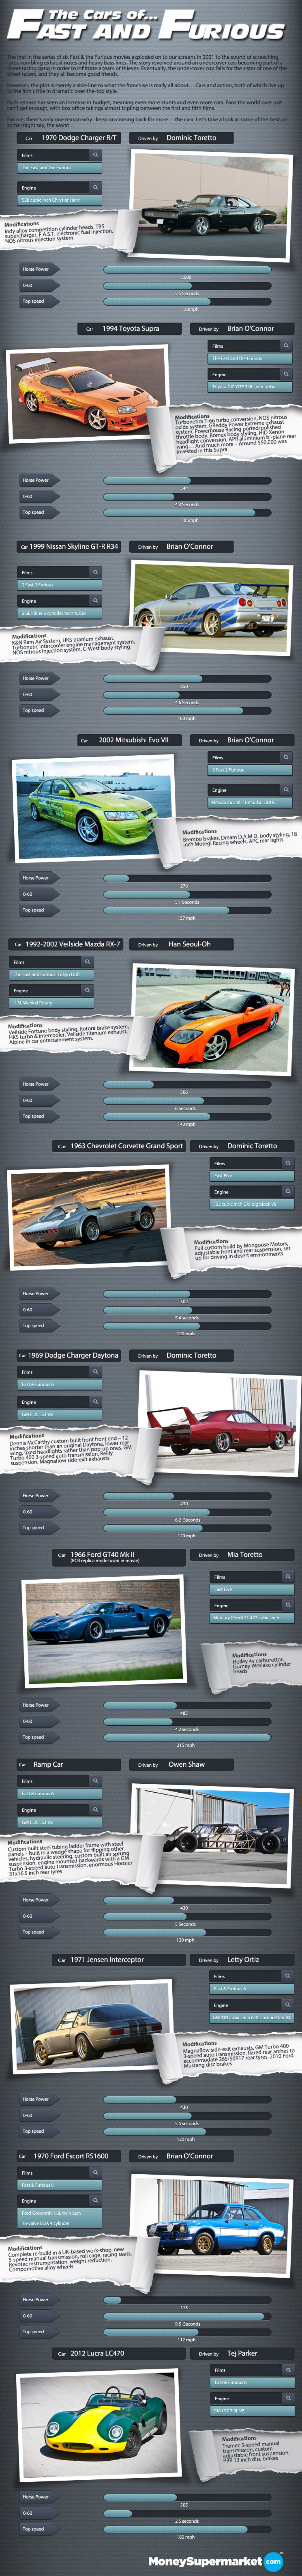 The cars of the Fast and the Furious Movies Infographic